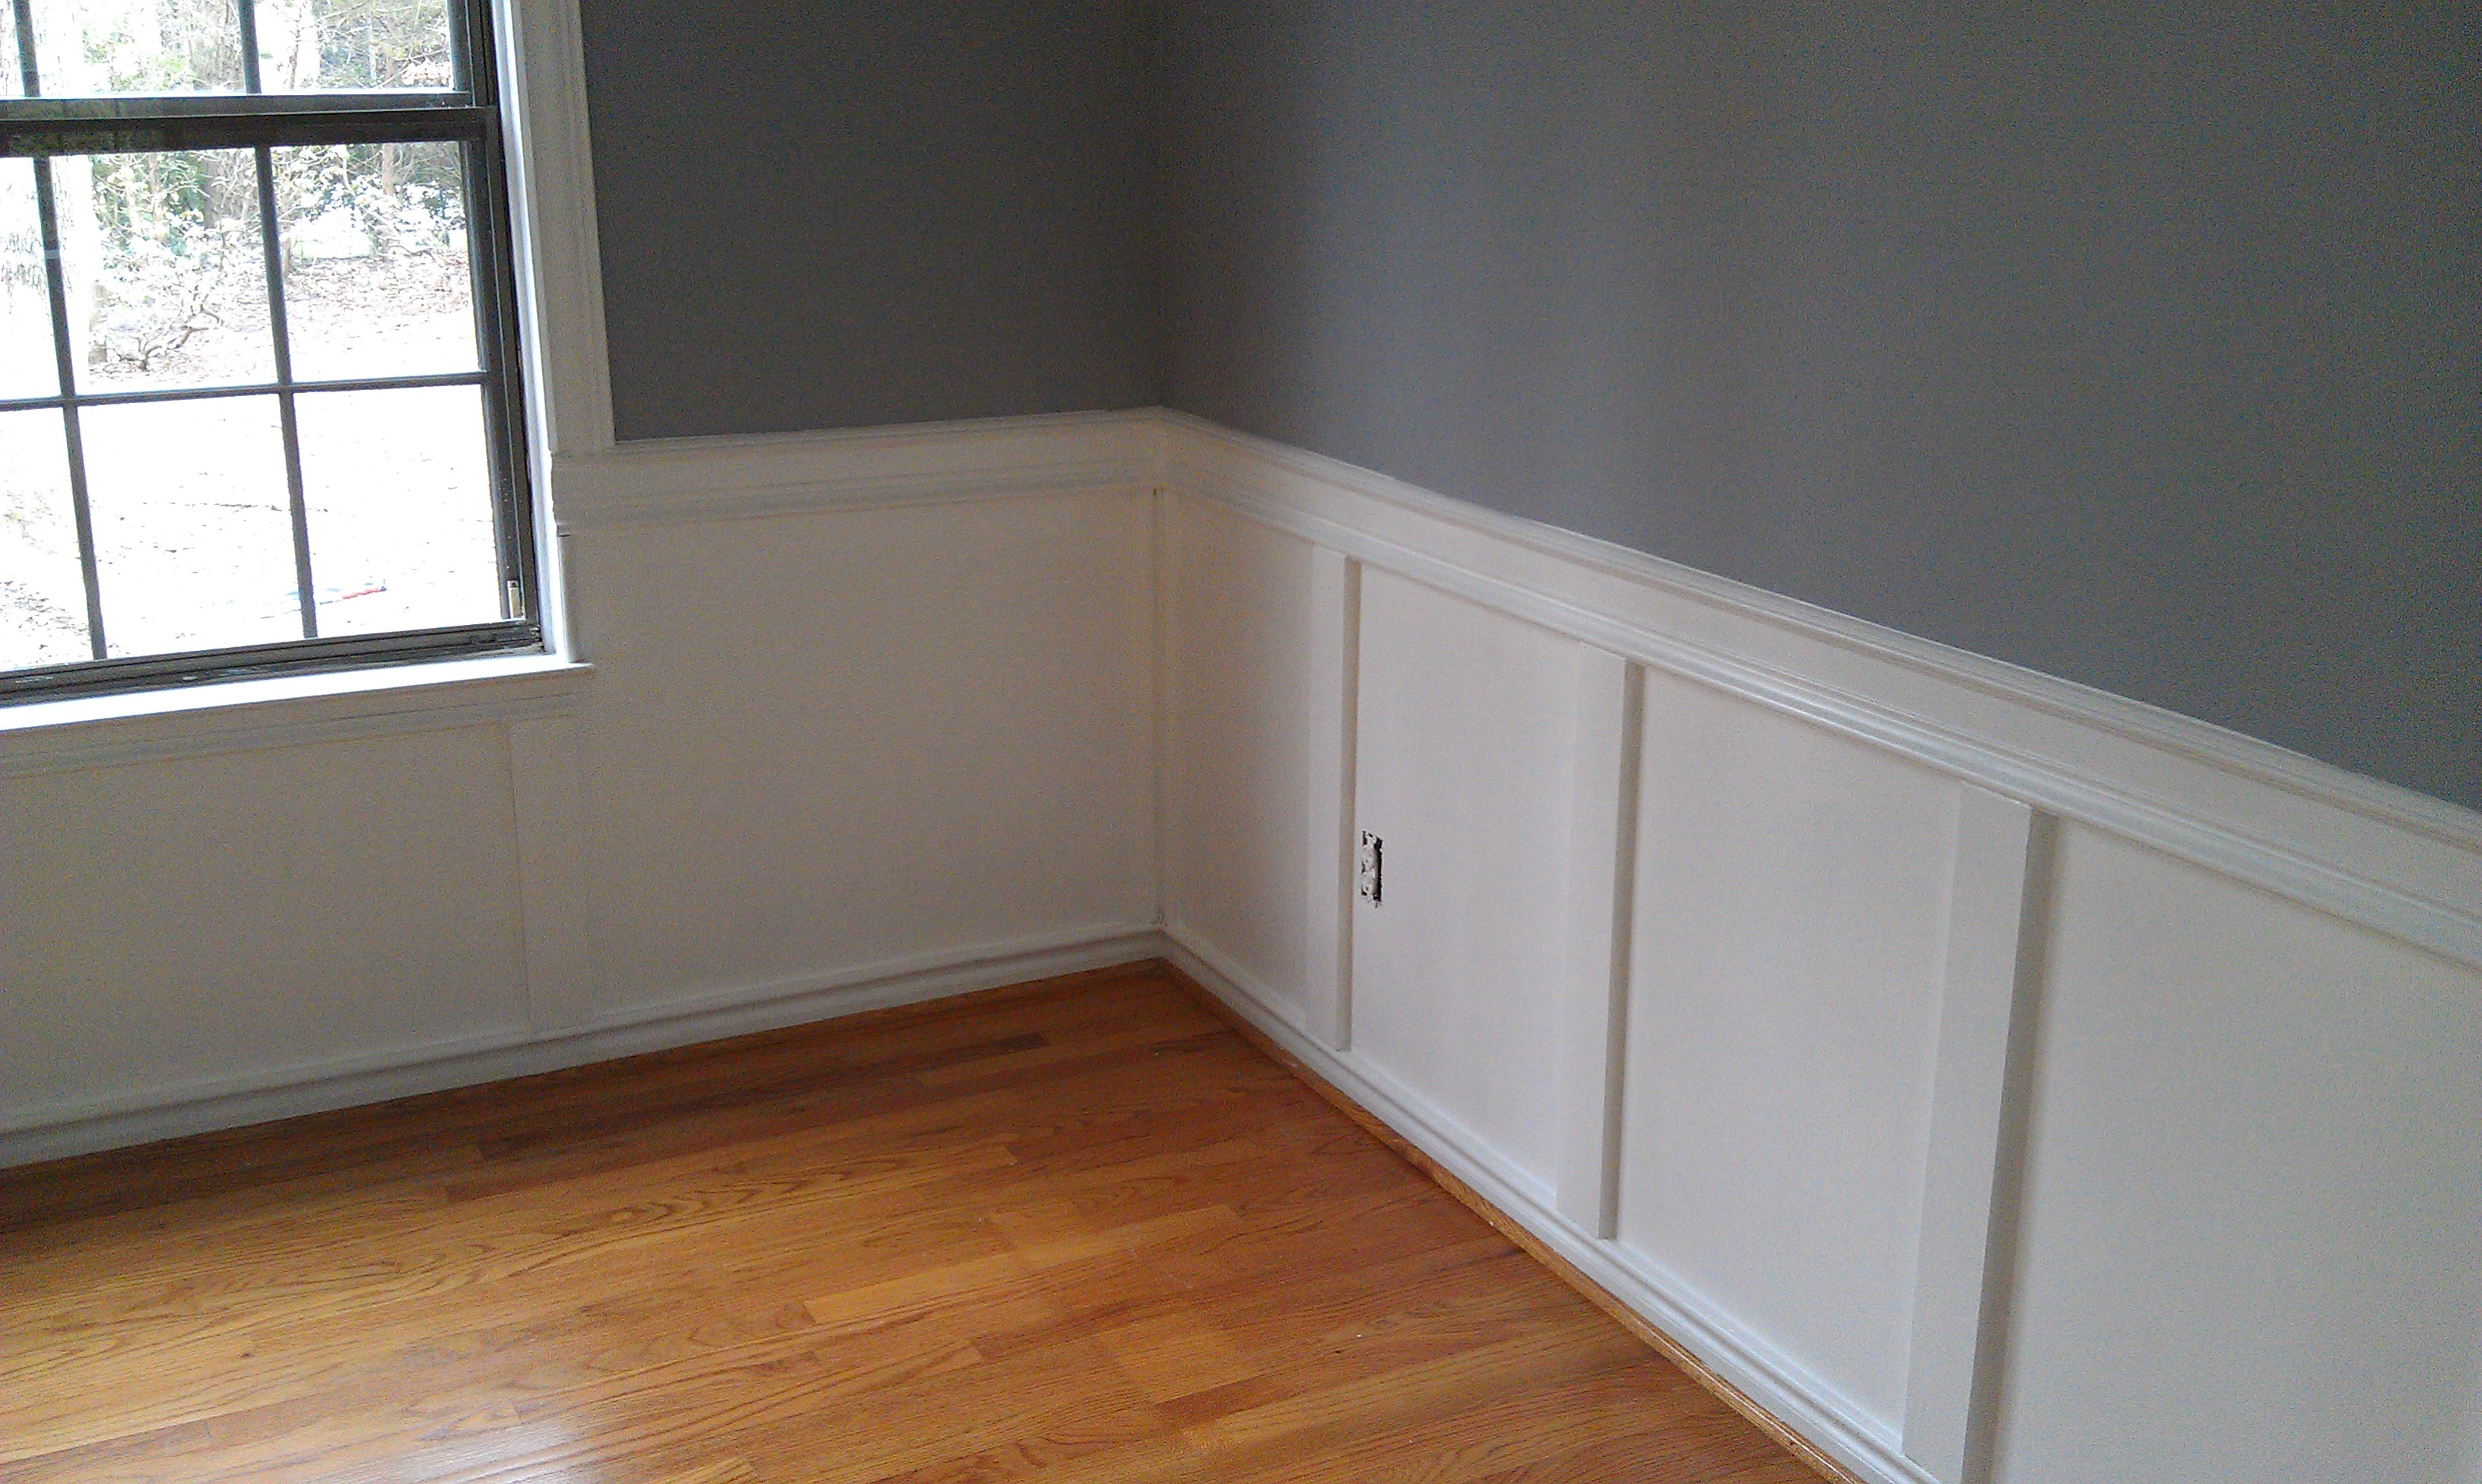 Wainscoting sophia rae home furnishings for Dining room wainscoting